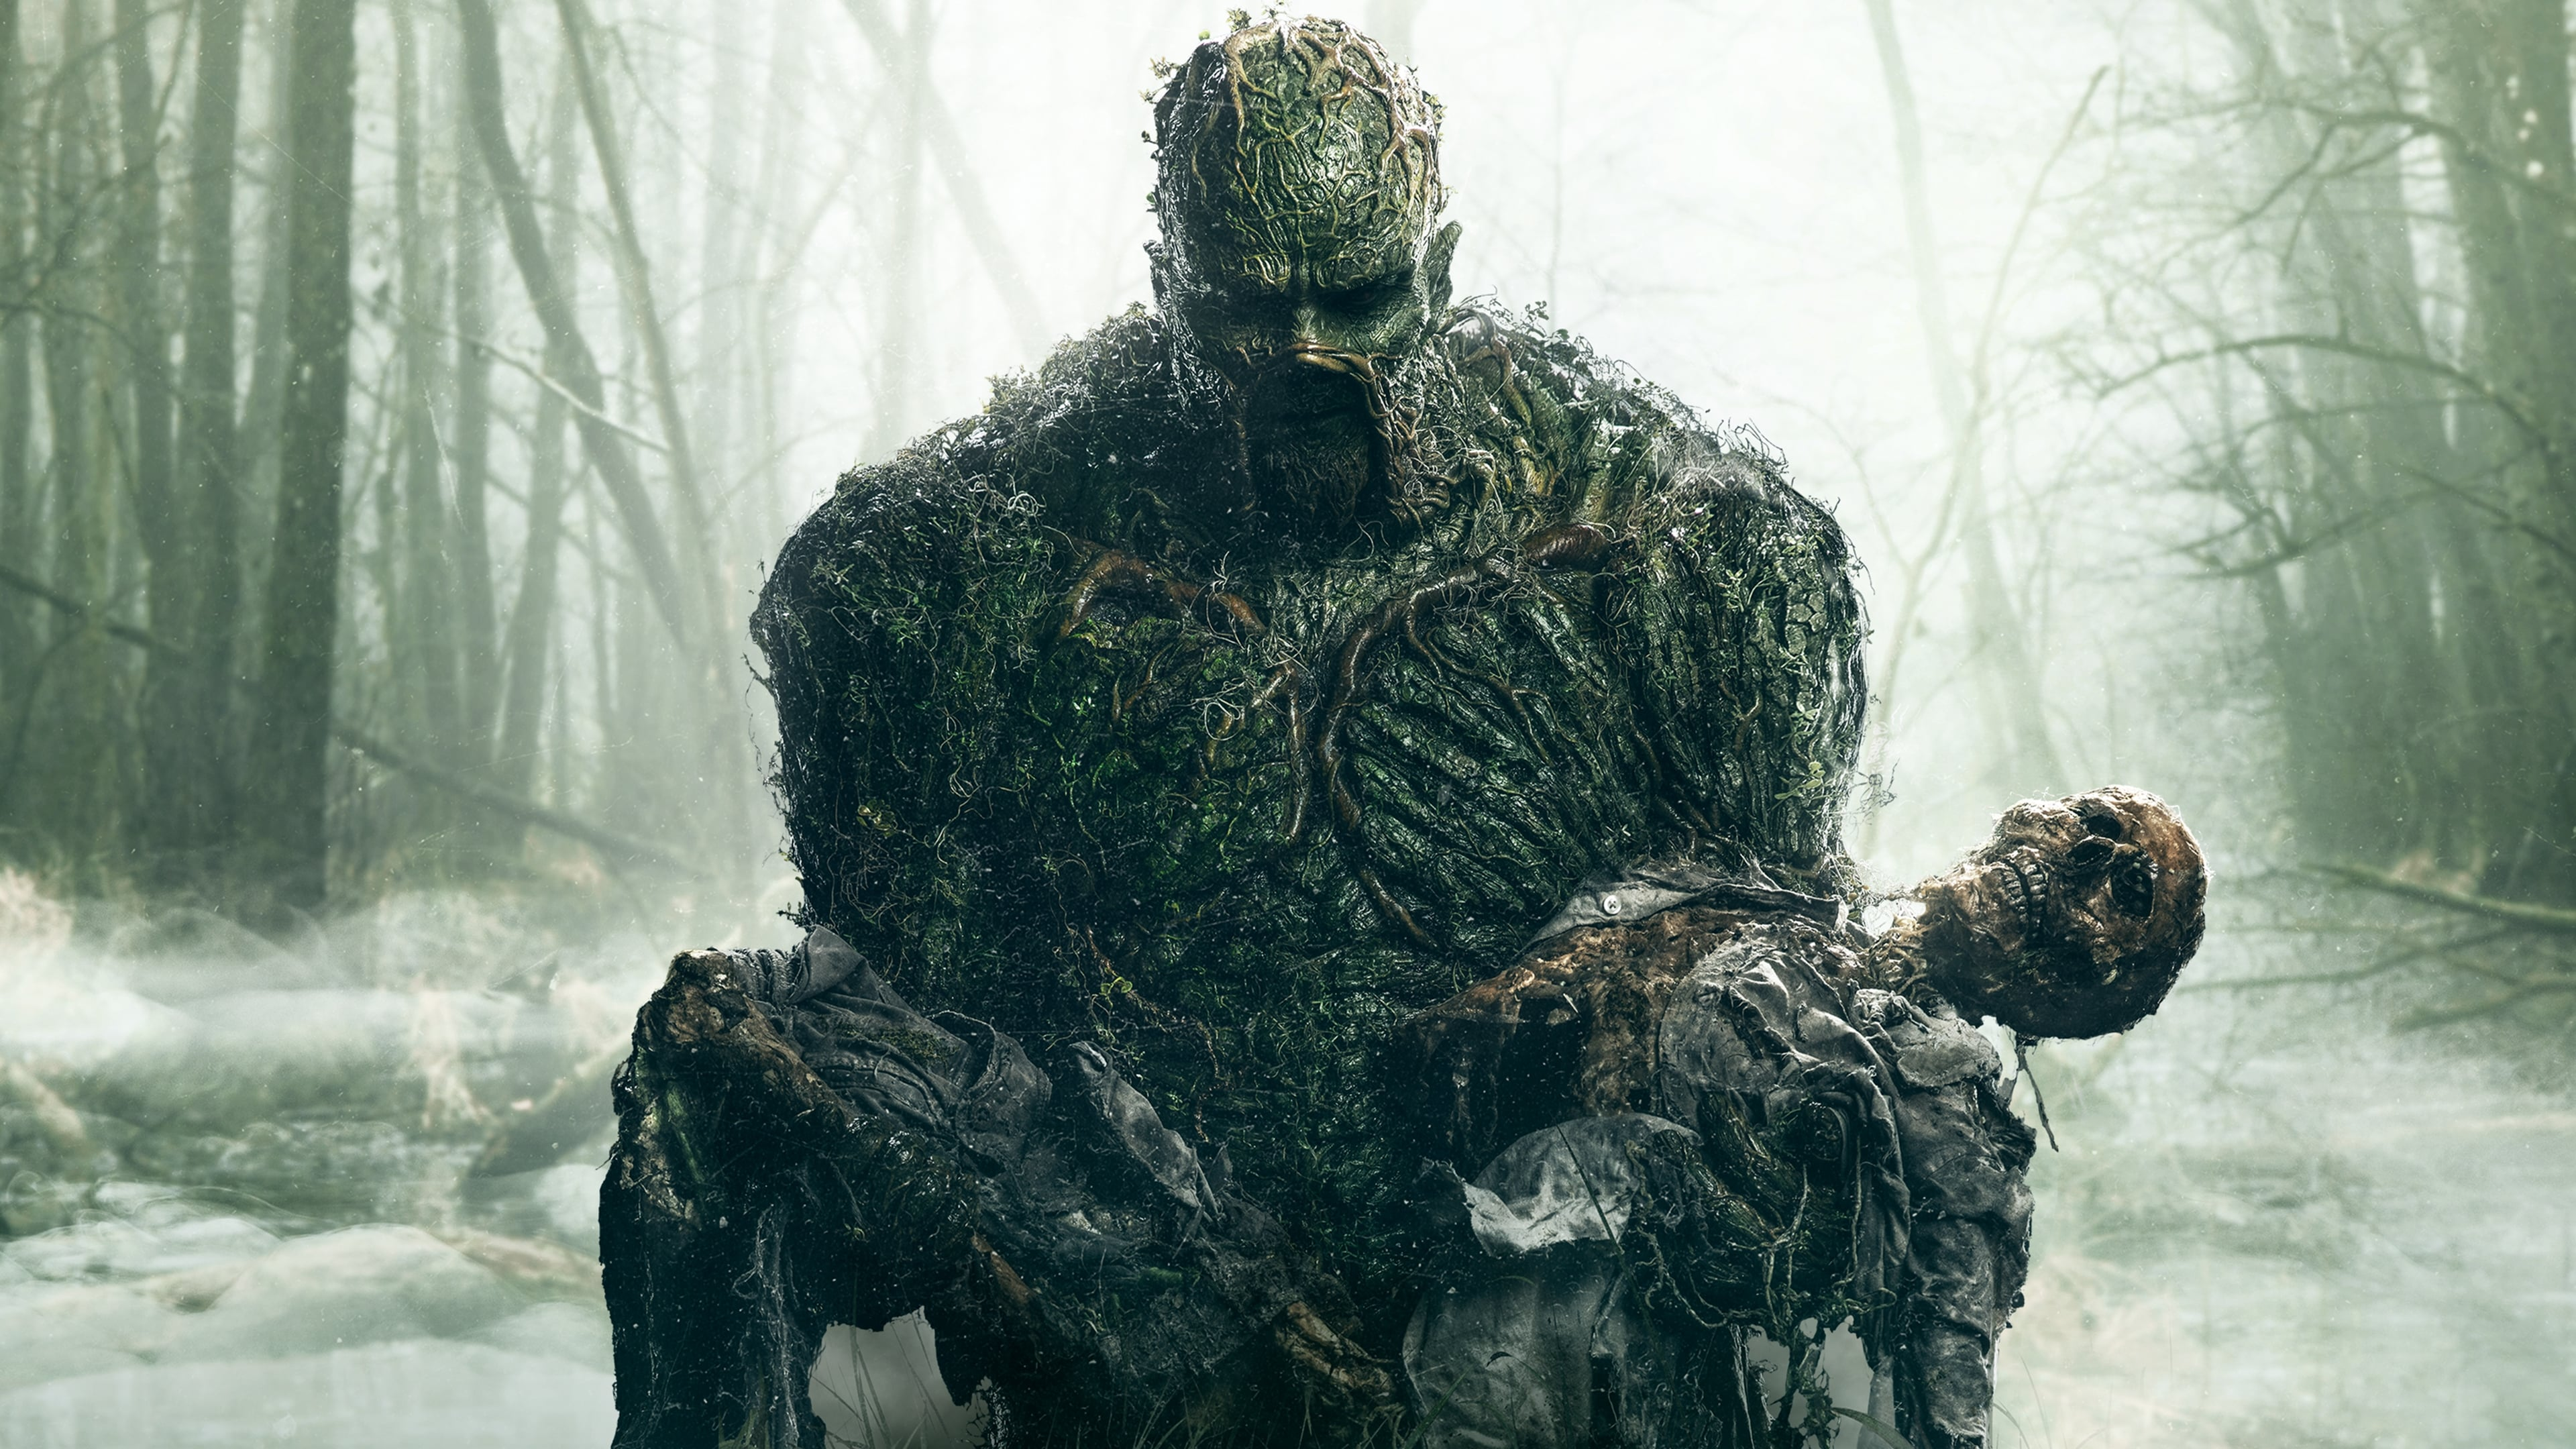 Swamp Thing (2019) Deutsch Stream Online Anschauen